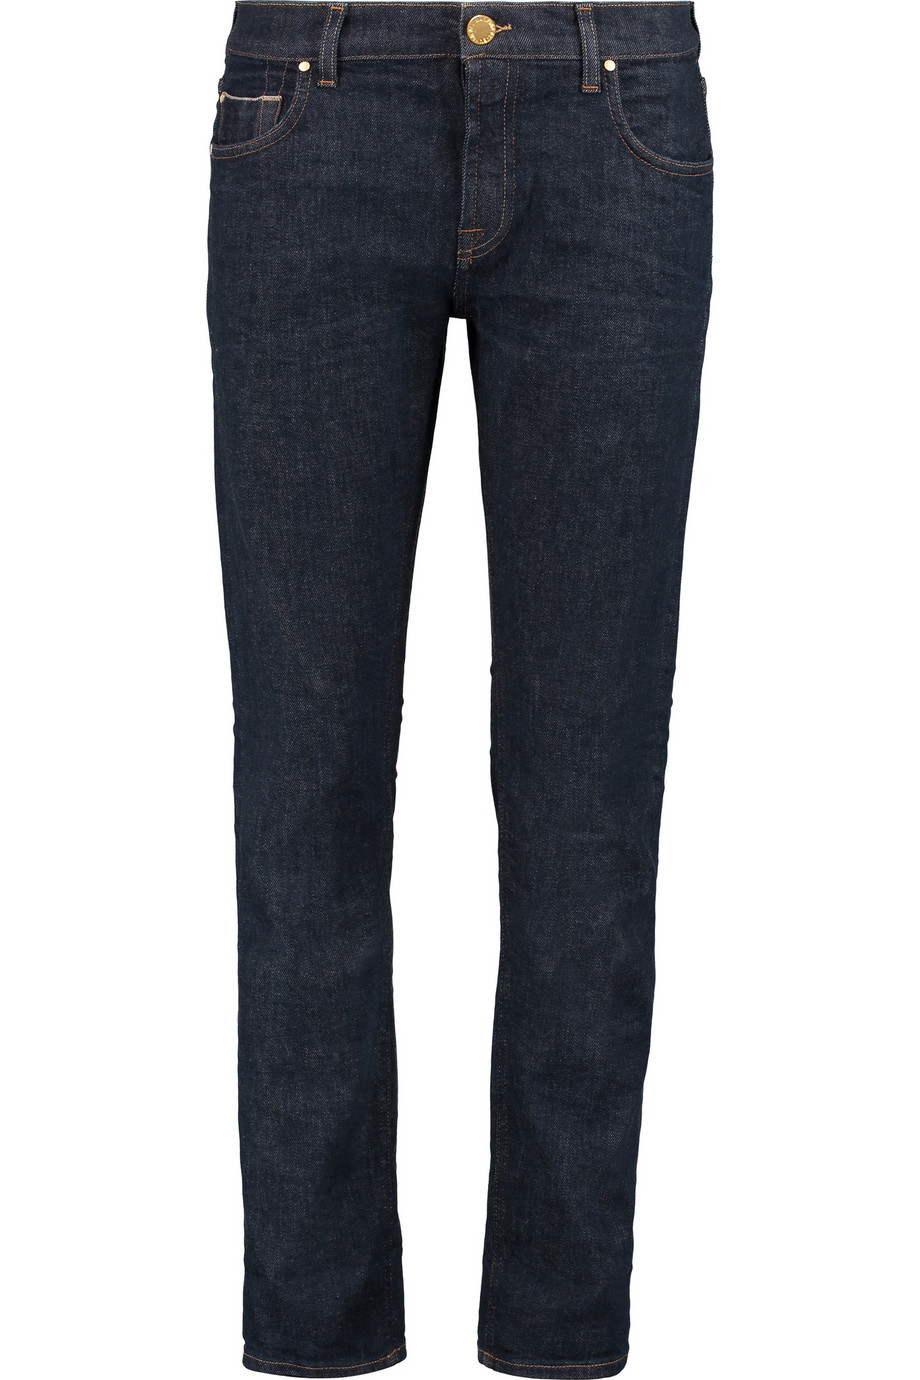 Relaxed Skinny Mid Rise Straight Leg Jeans Dark Denim - style: straight leg; pattern: plain; pocket detail: traditional 5 pocket; waist: mid/regular rise; predominant colour: navy; occasions: casual; length: ankle length; fibres: cotton - stretch; jeans detail: dark wash; texture group: denim; pattern type: fabric; season: a/w 2015